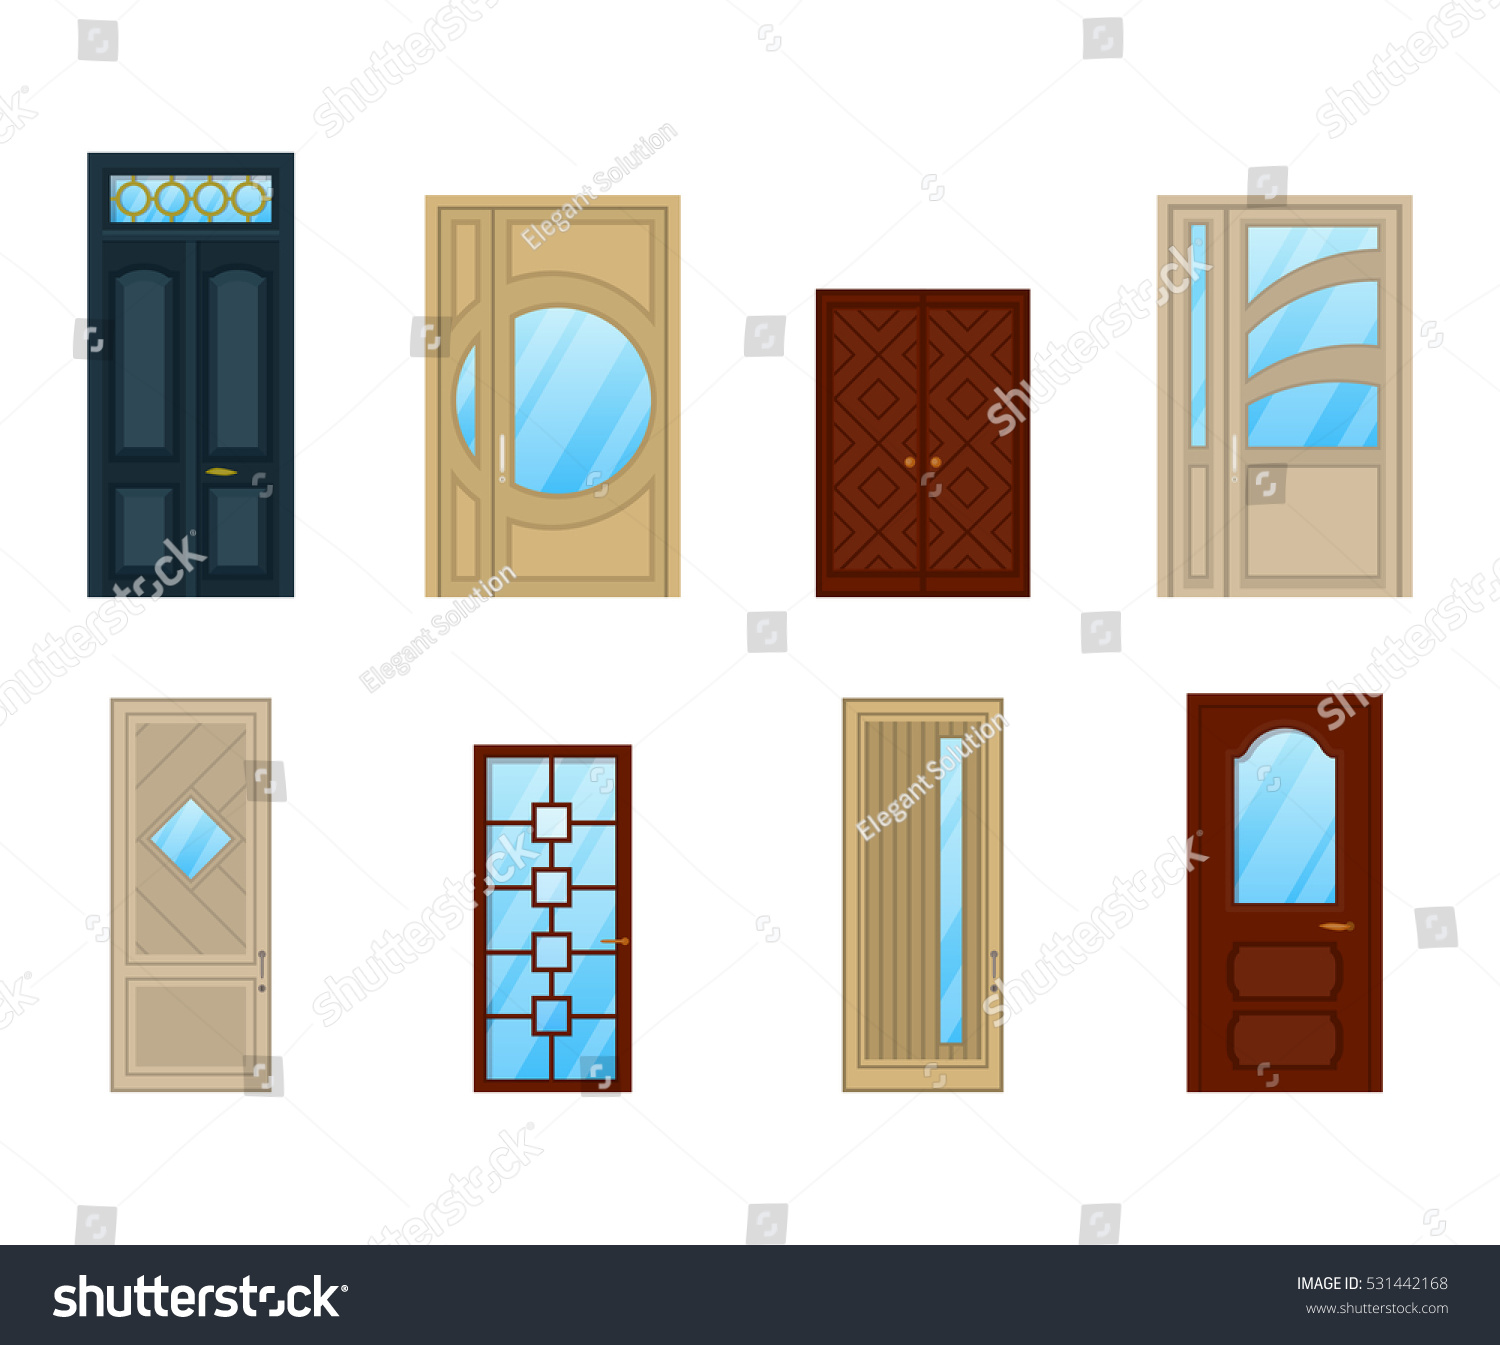 door modern product buy doors latest steel interior wooden design designs wood detail room